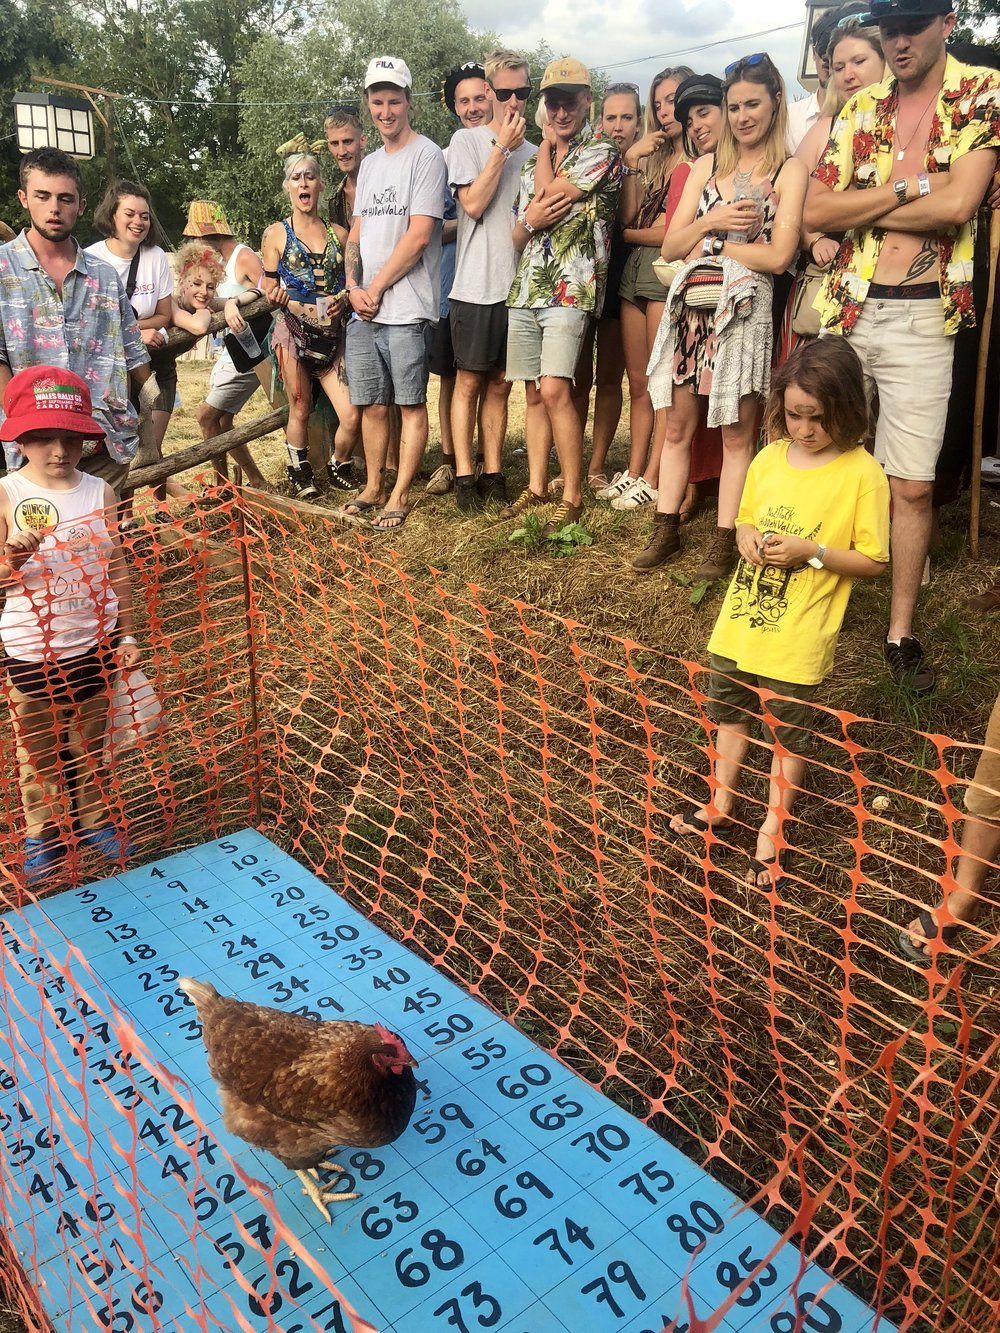 Chicken Shit Bingo: You buy a number, if the chicken shits on your number you win £50 and the rest of the money goes to charity. It's tense, it's quirky and it's all to play for.